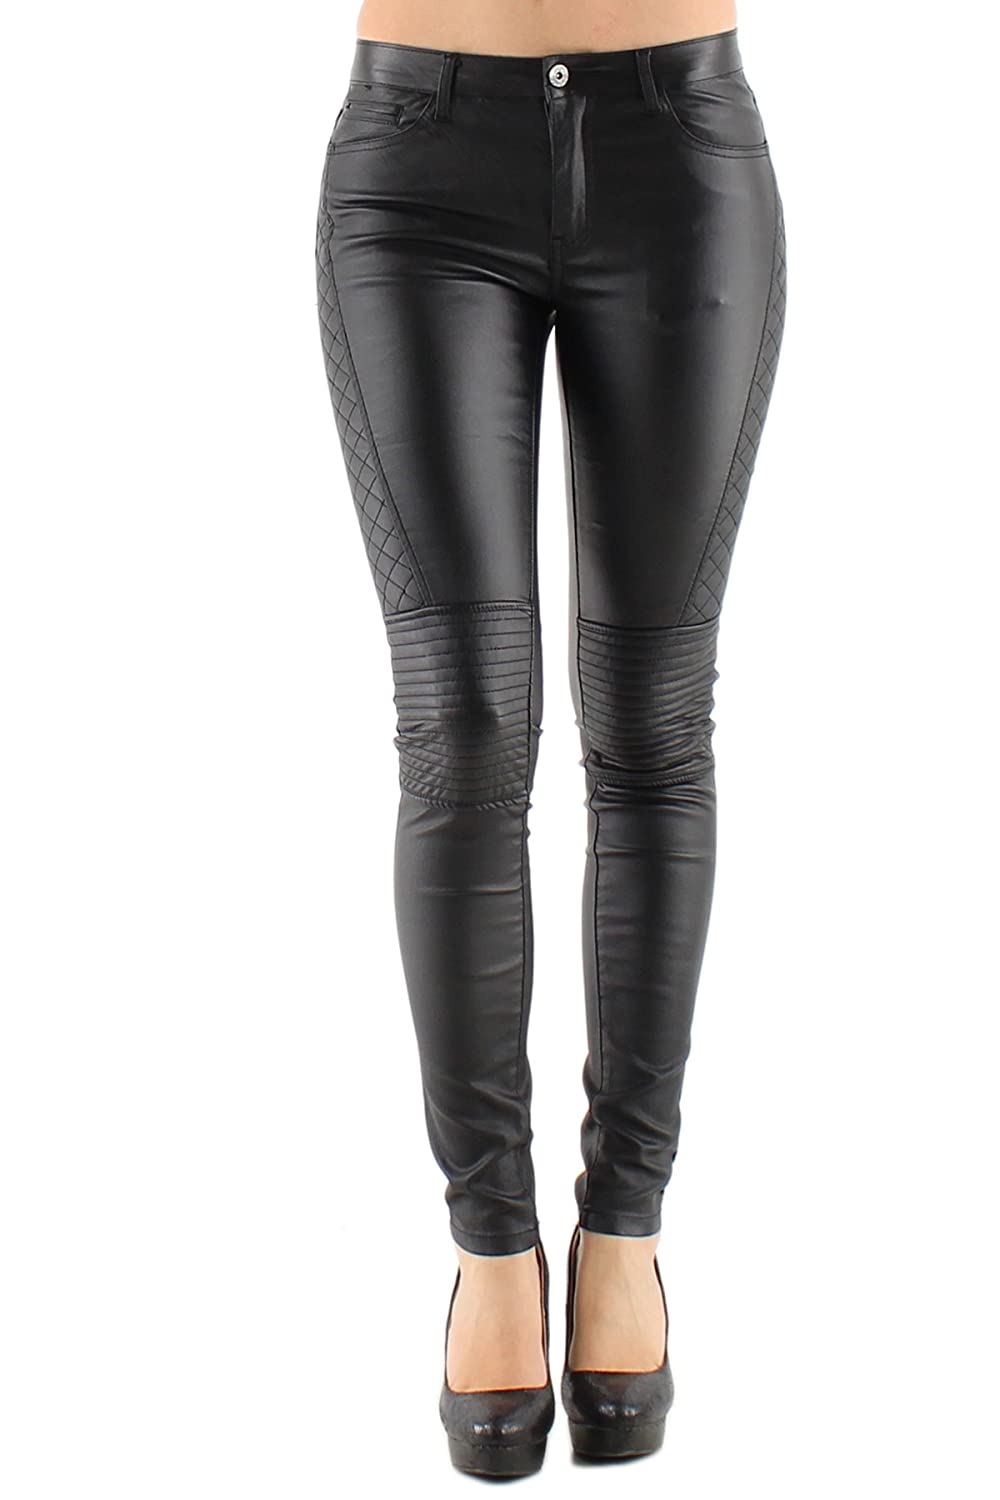 Women&39s stretch Leather look Jeans Trousers Slim Skinny Dark Red